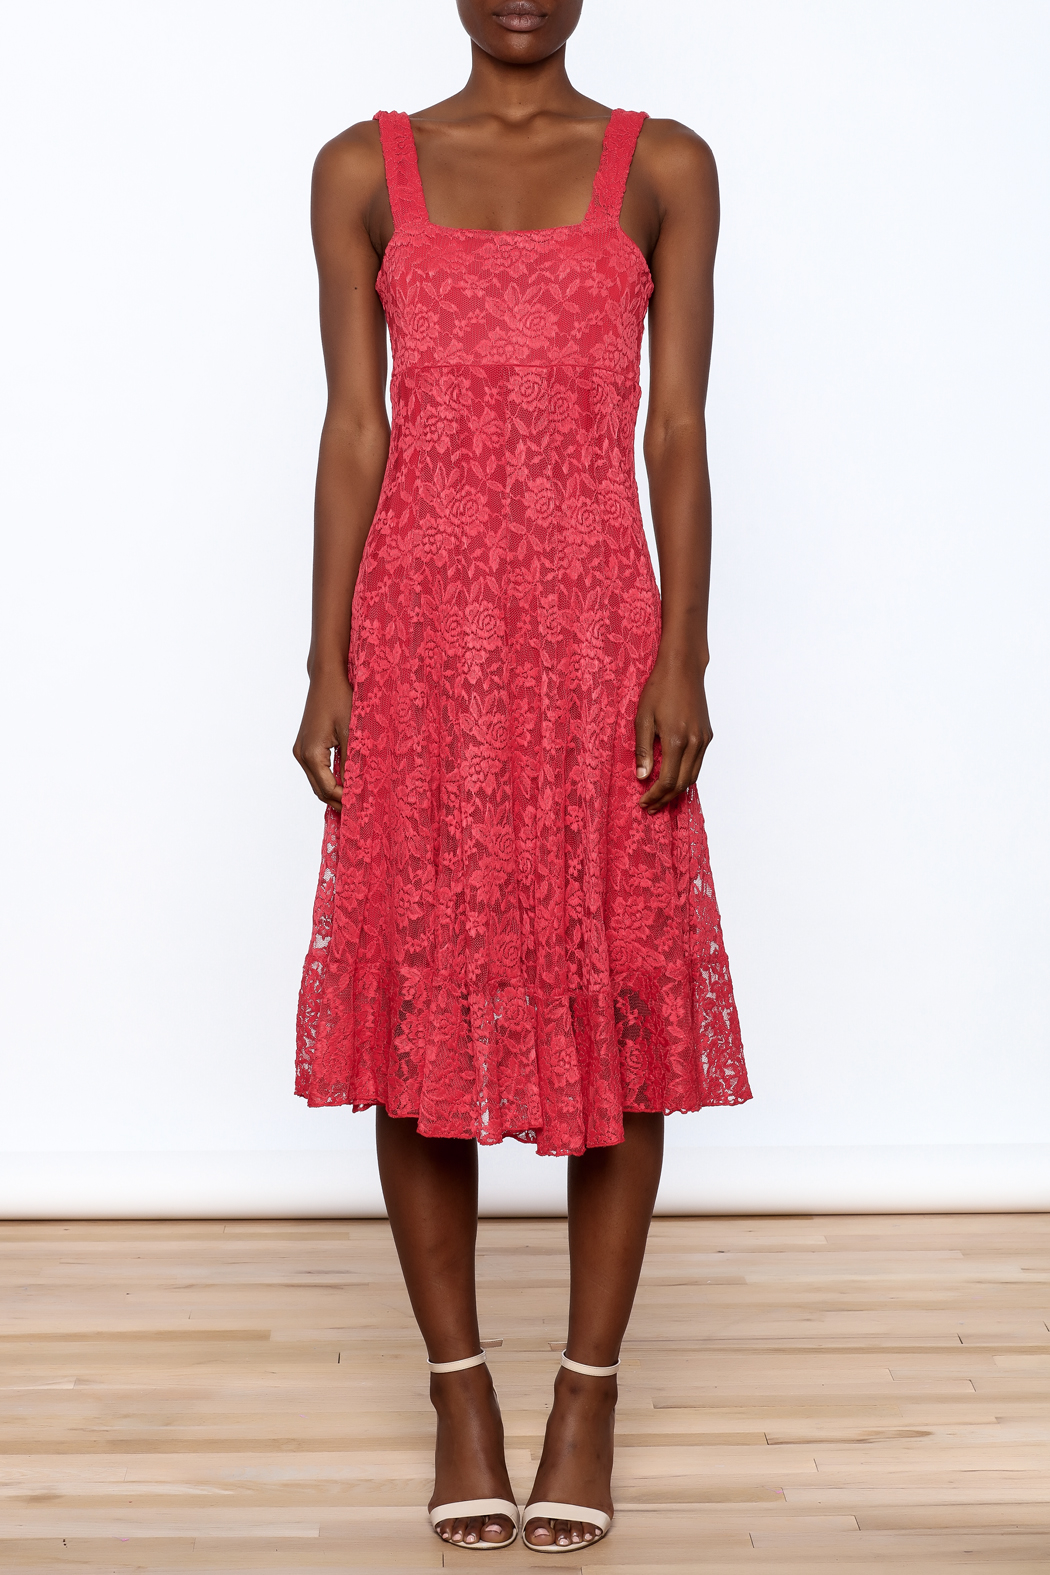 Sharon Max Red Lace Midi Dress - Front Cropped Image